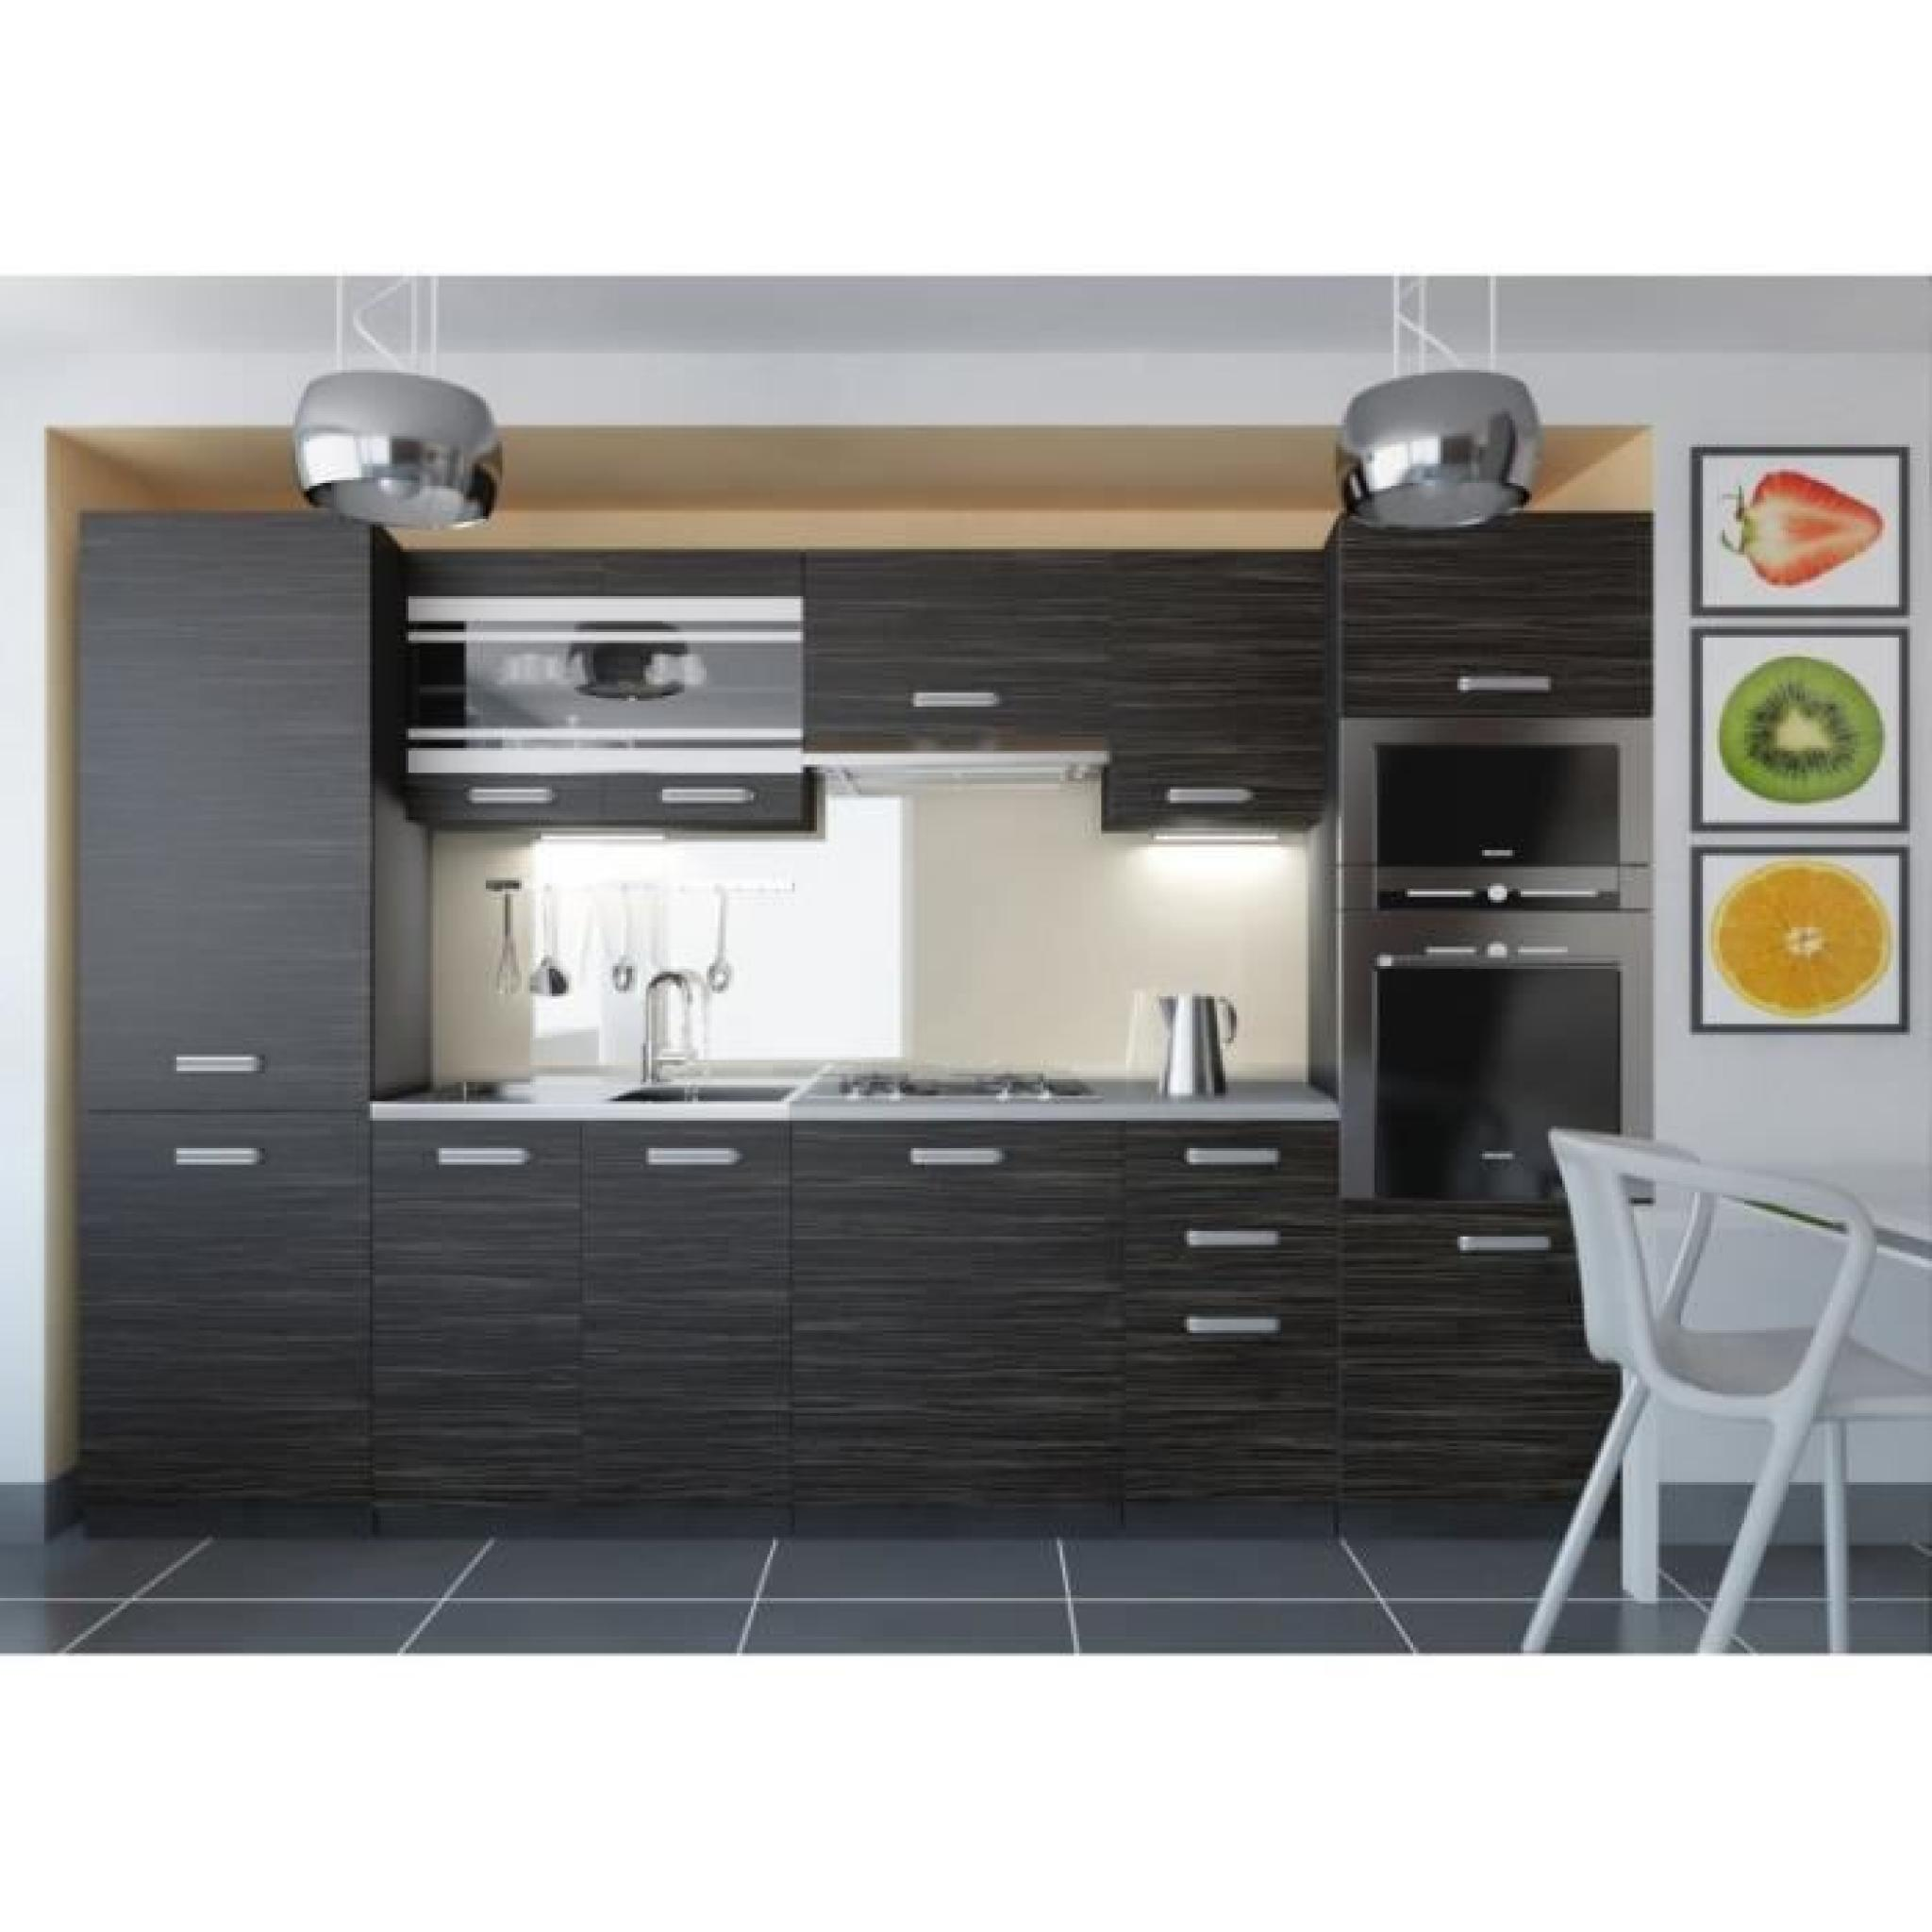 cuisine equipee en solde maison moderne. Black Bedroom Furniture Sets. Home Design Ideas